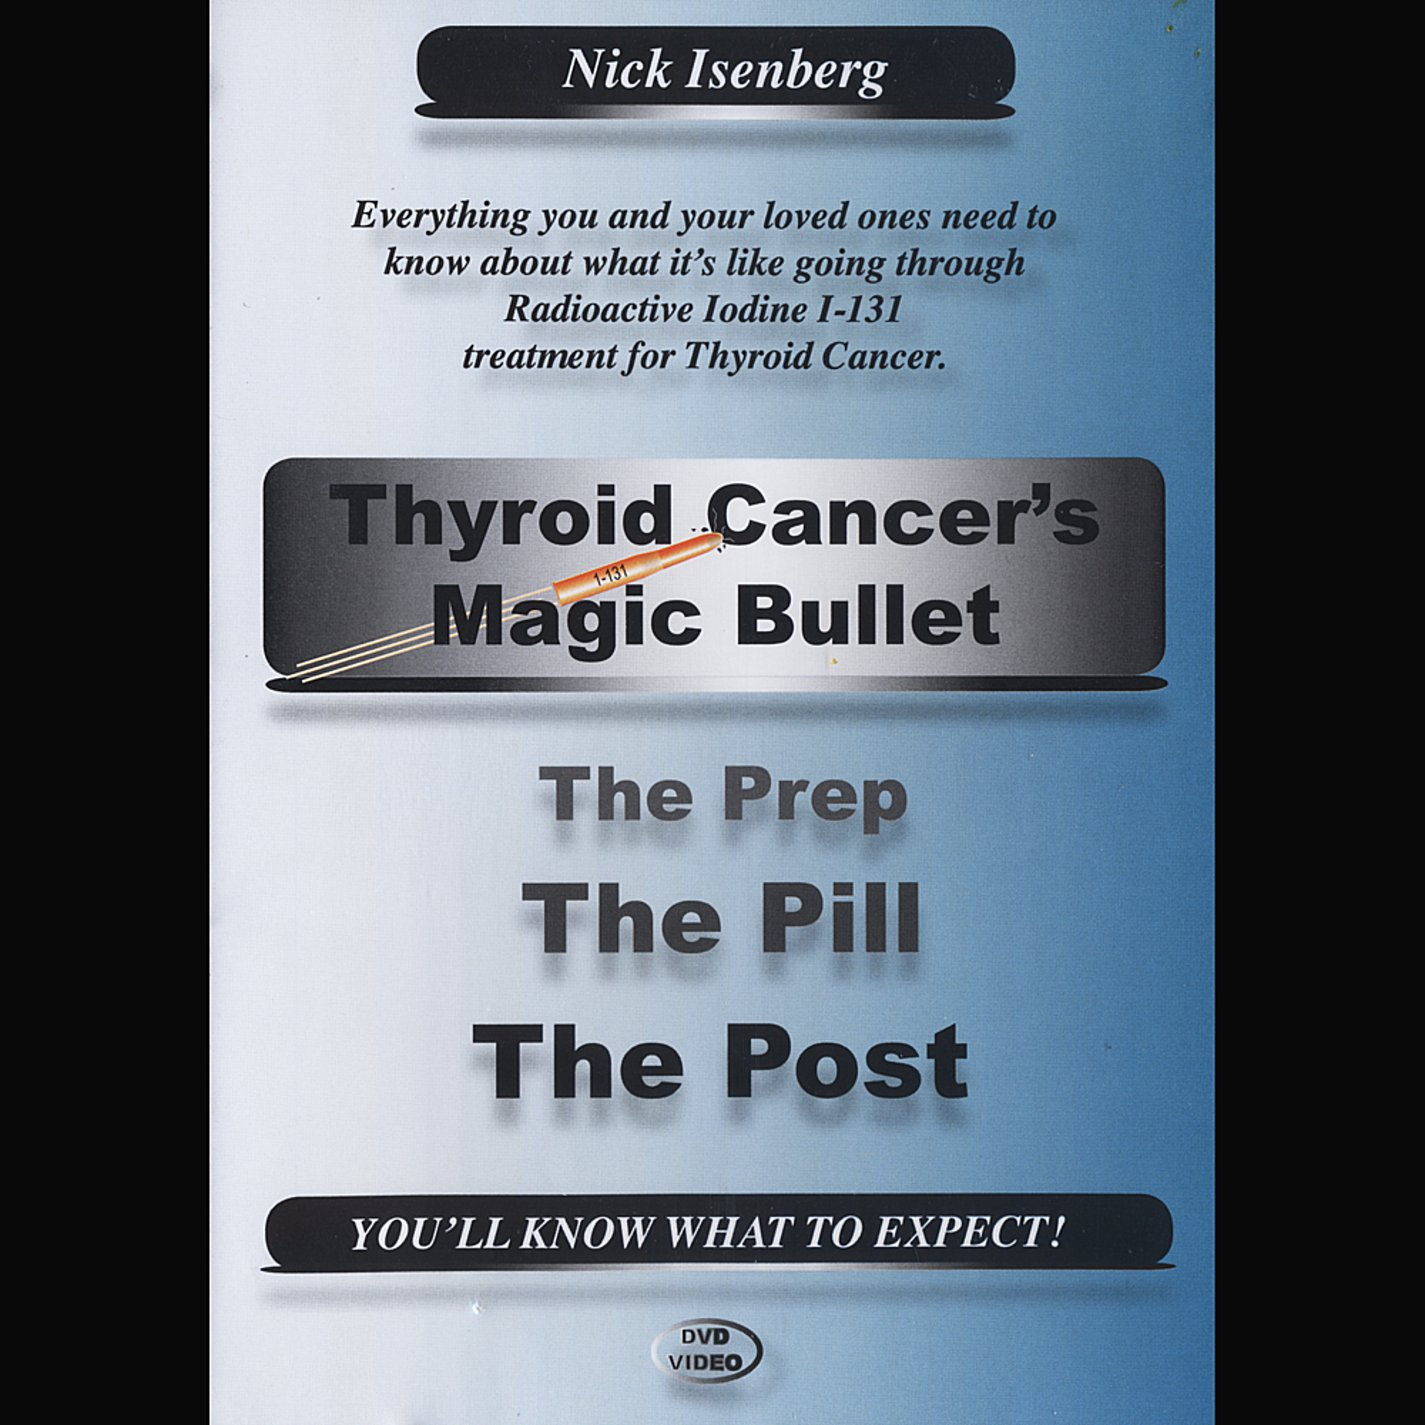 Thyroid Cancer's Gifts Magic Bullet Super sale period limited